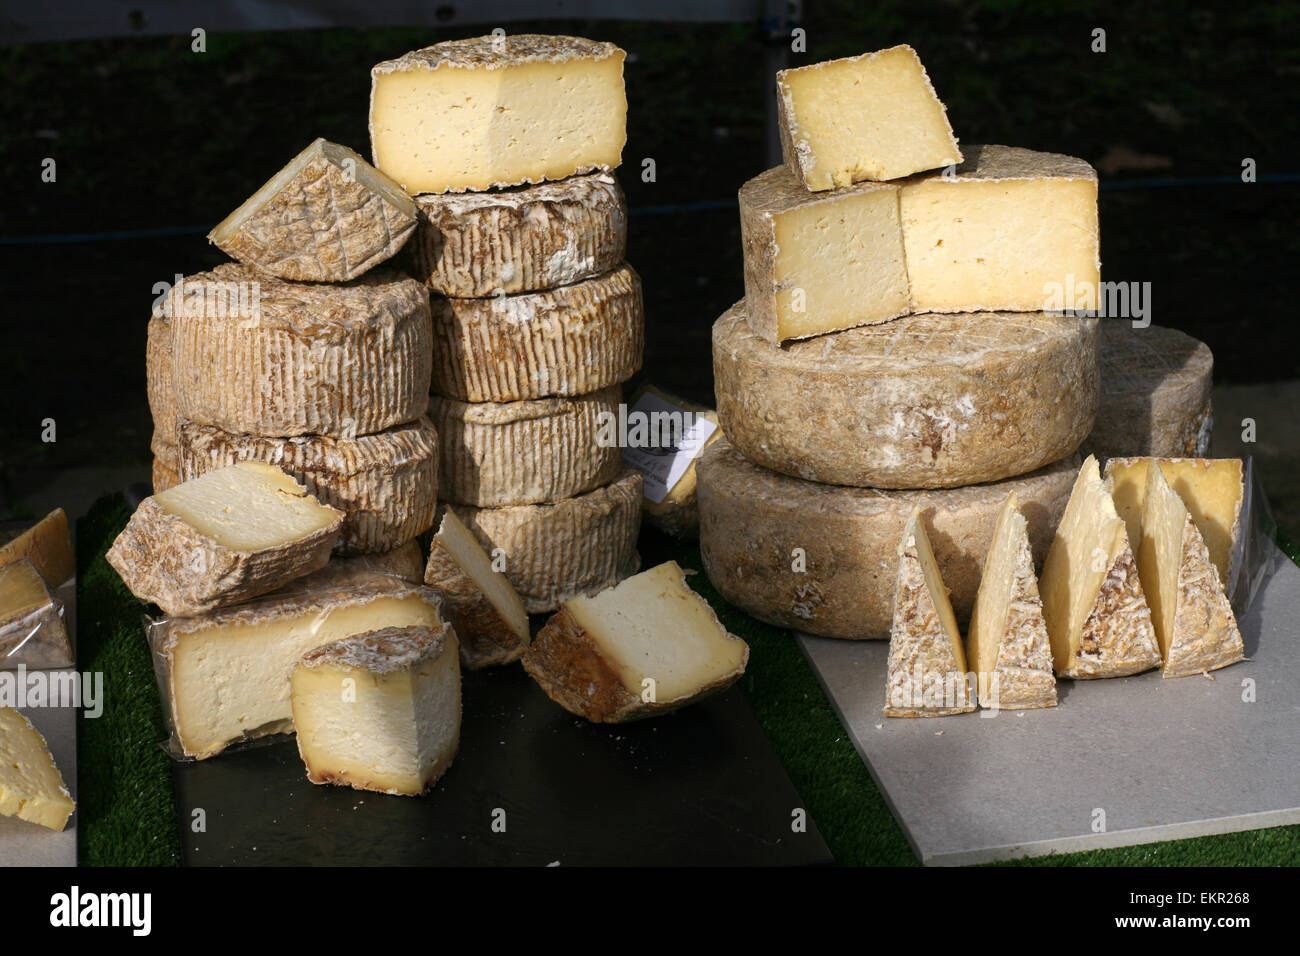 Speciality cheese stall at Farmers Market - Stock Image